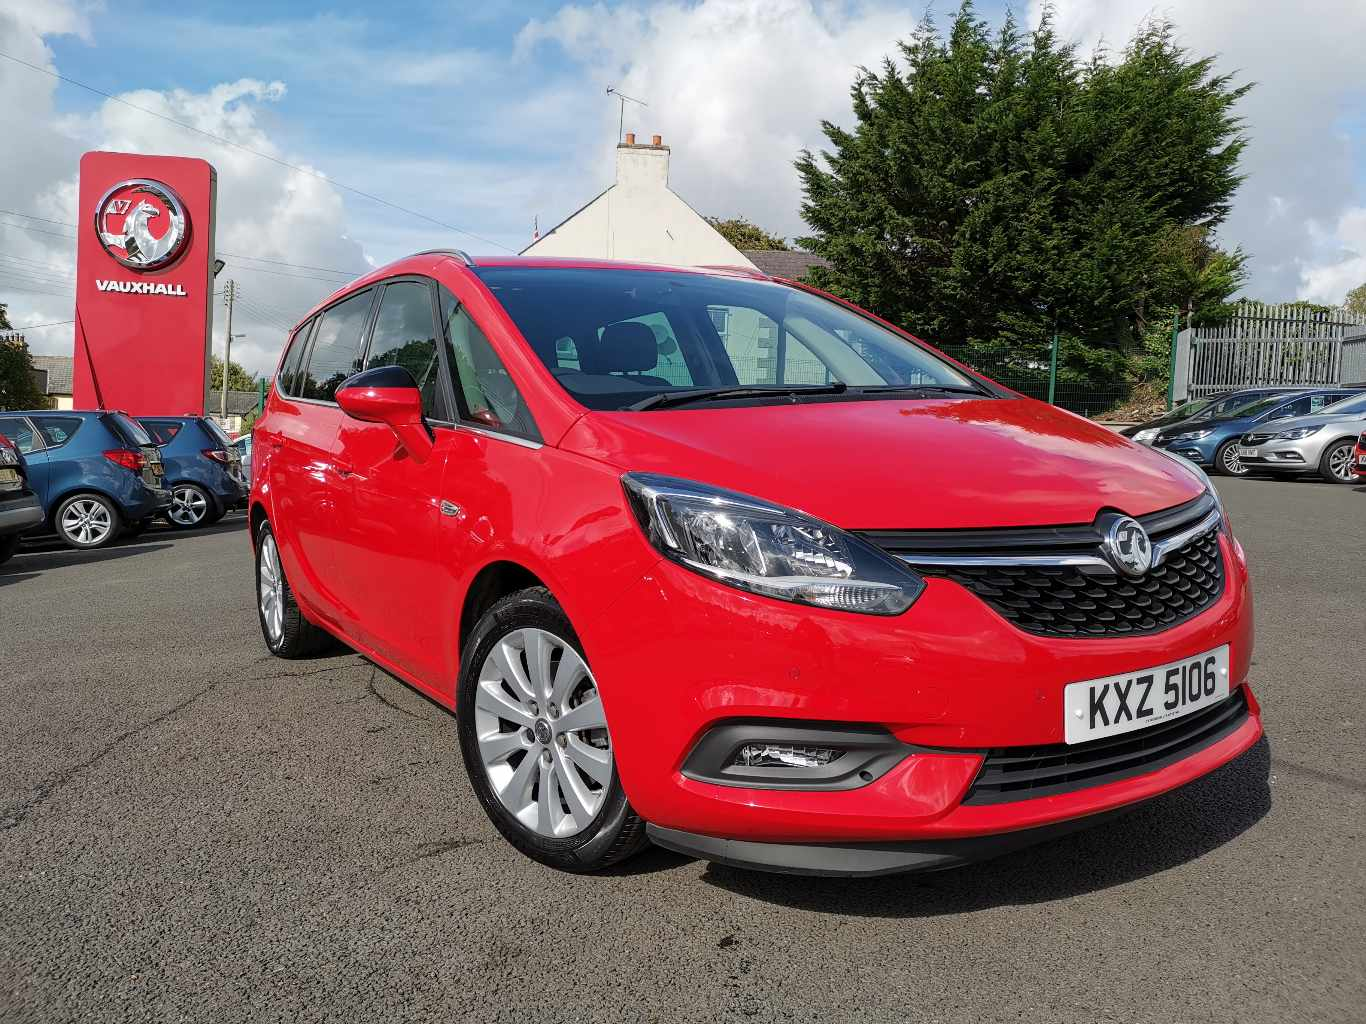 Vauxhall Zafira TOURER 1.4 ENERGY 140PS